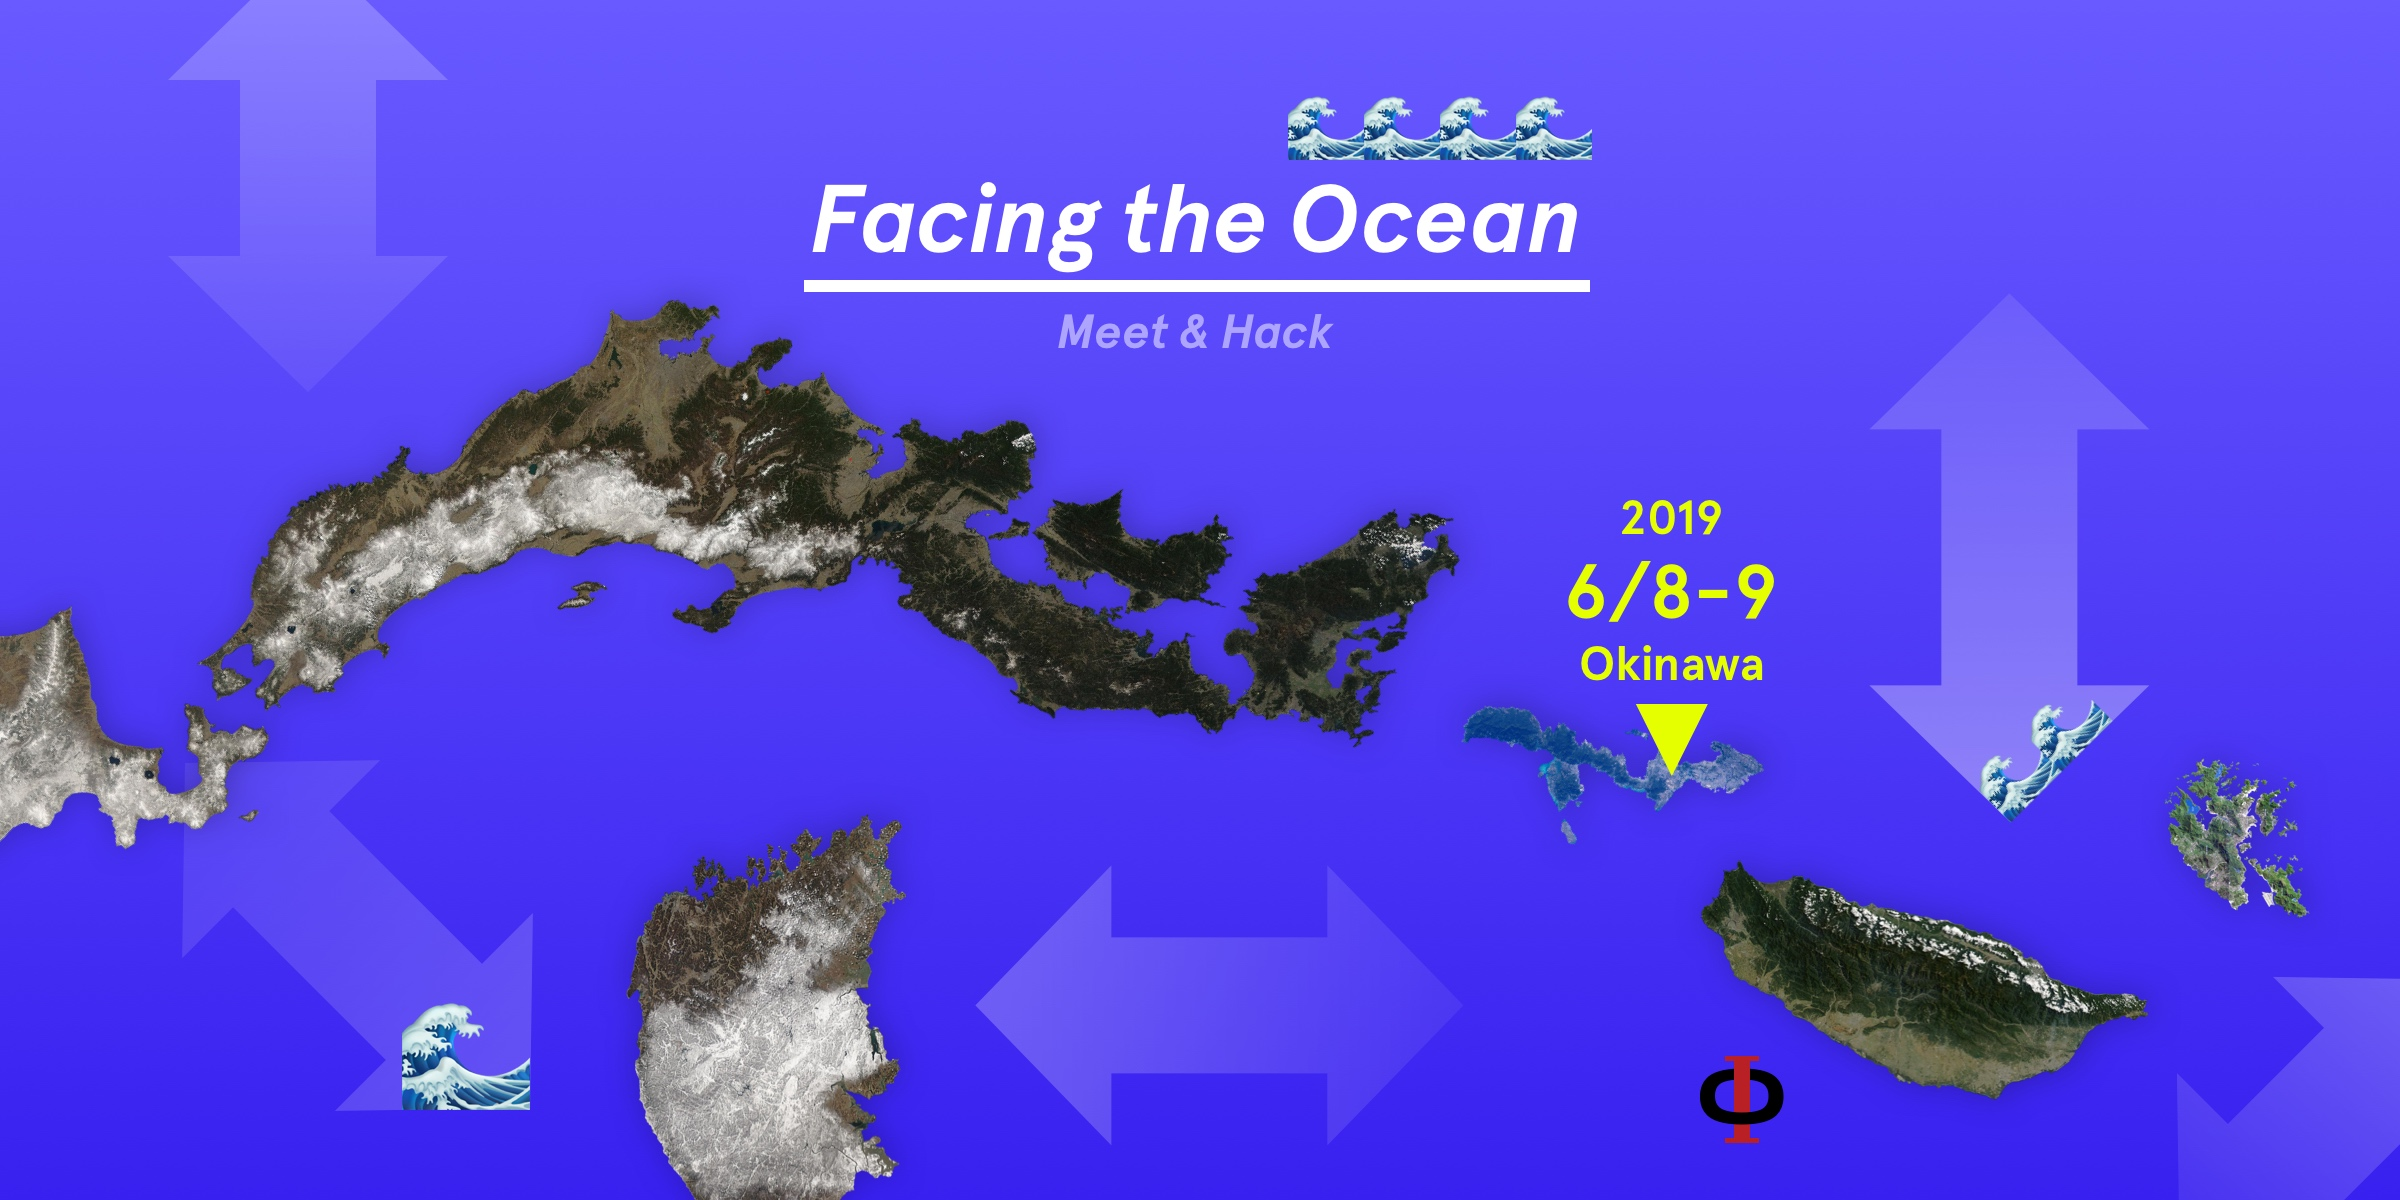 Event cover image for 國際出訪:Facing the Ocean Meet and Hack 面海黑客松 (沖繩)